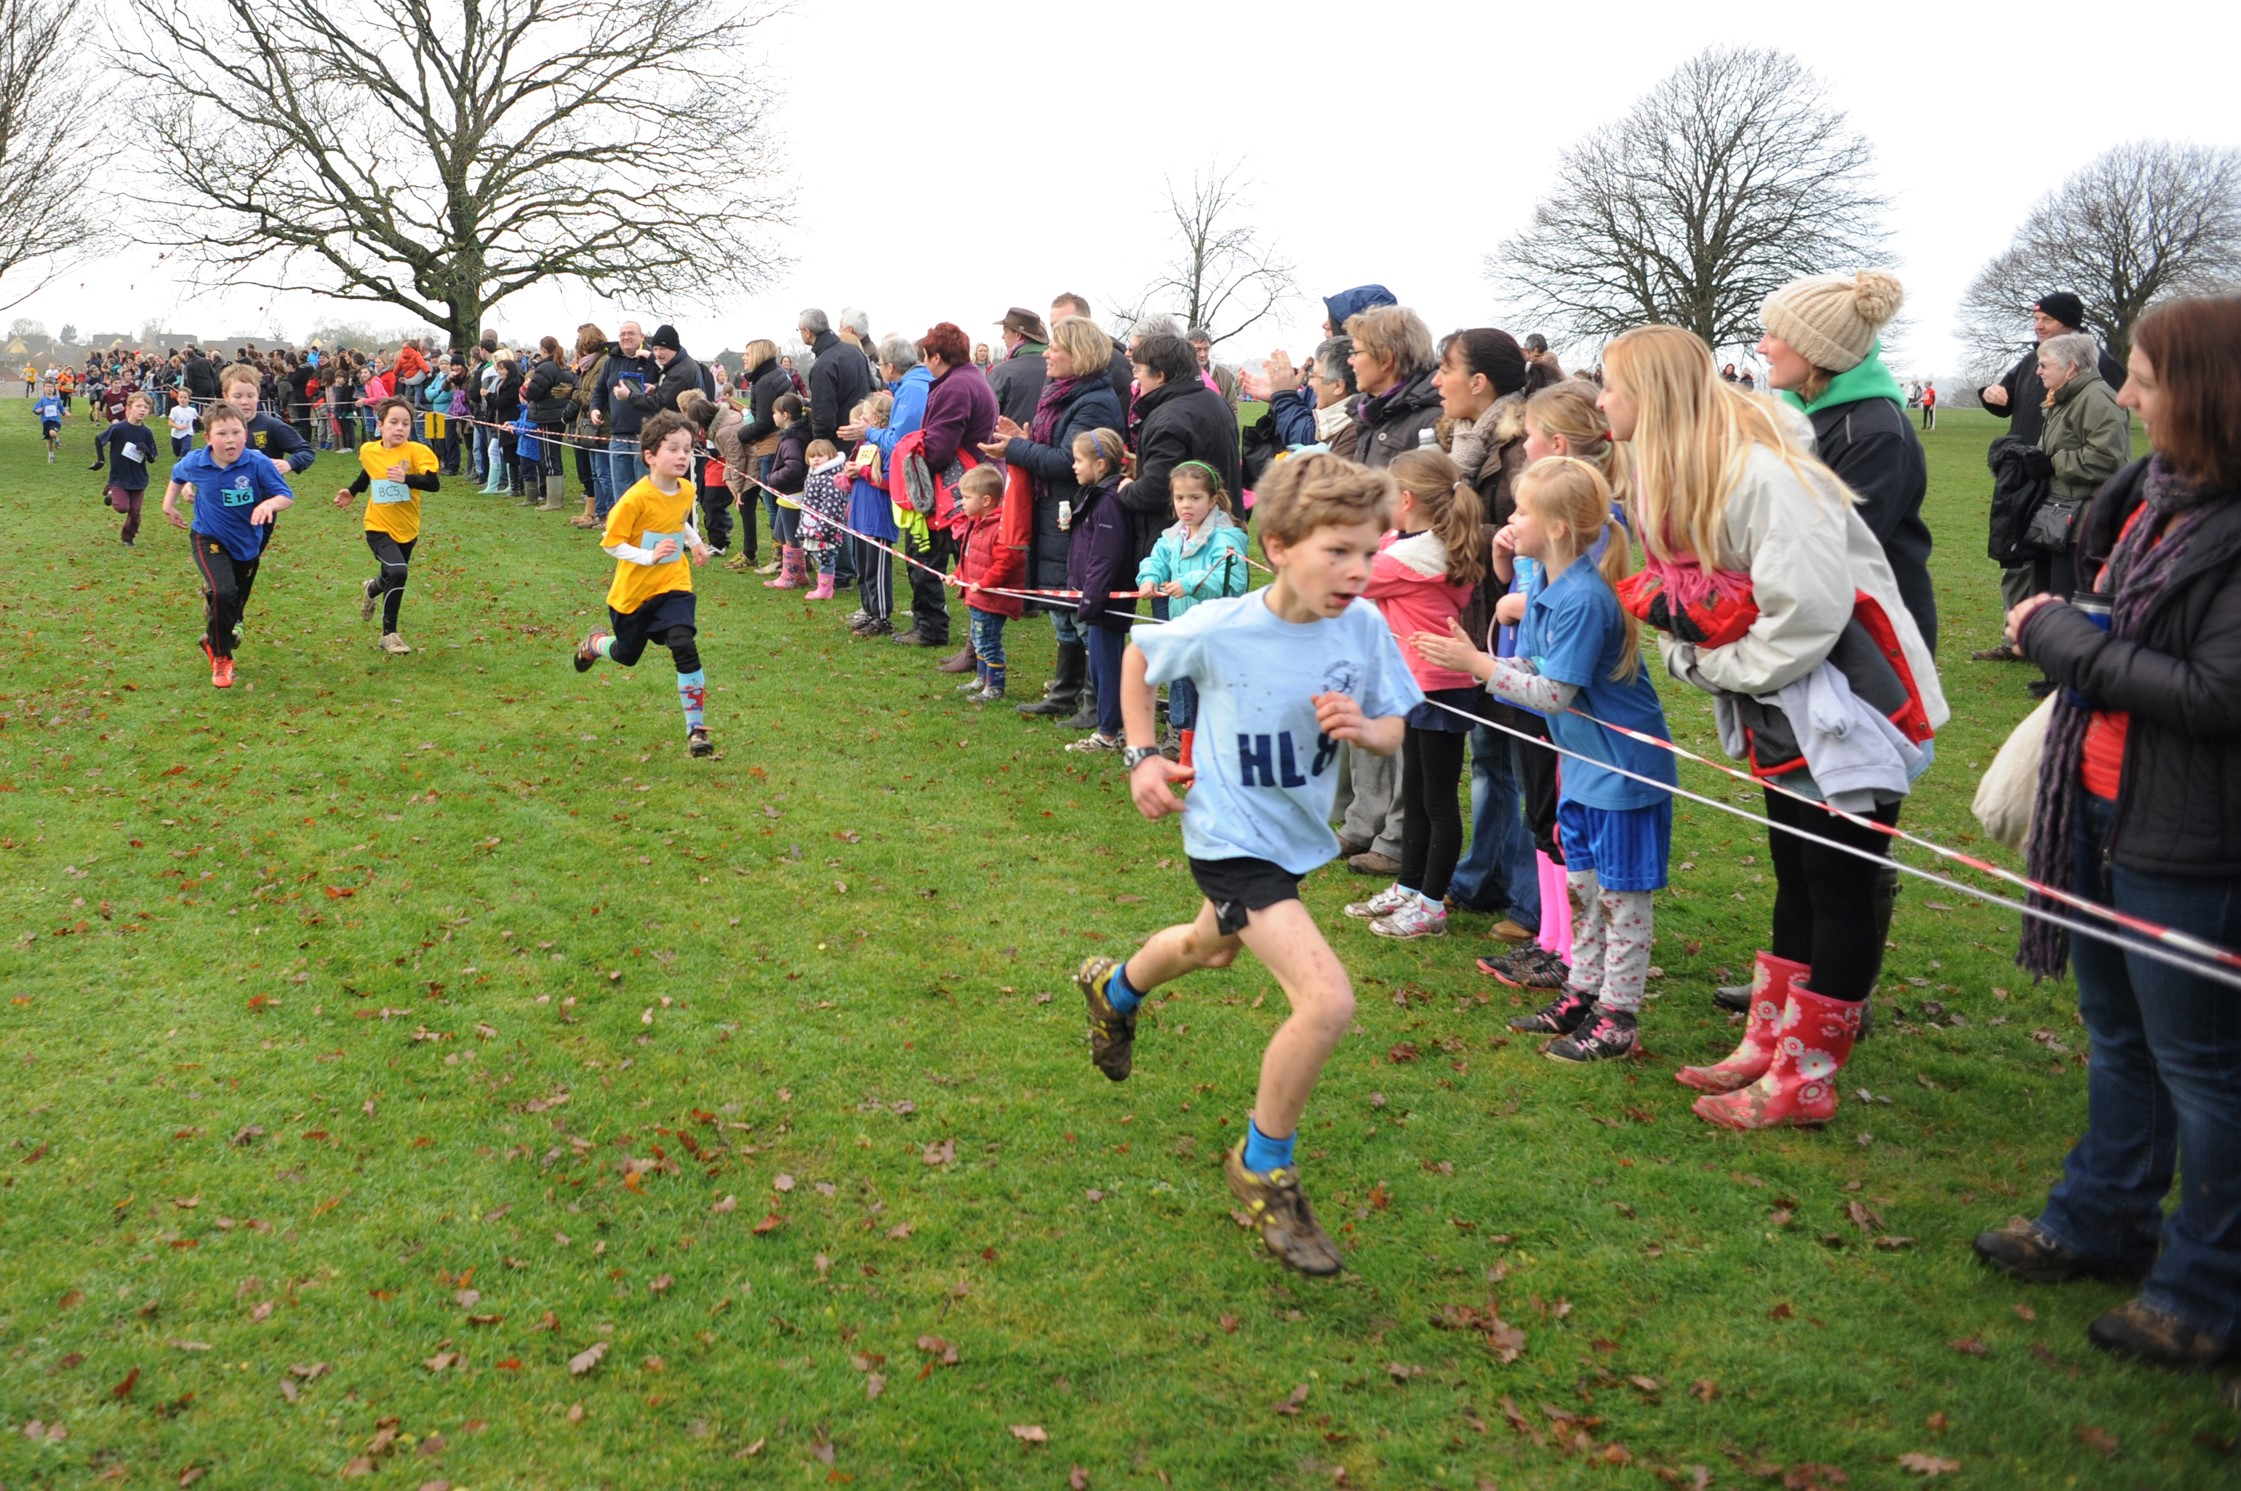 Athletics: Thrilling finale of District Primary School Cross Country Series at KLB